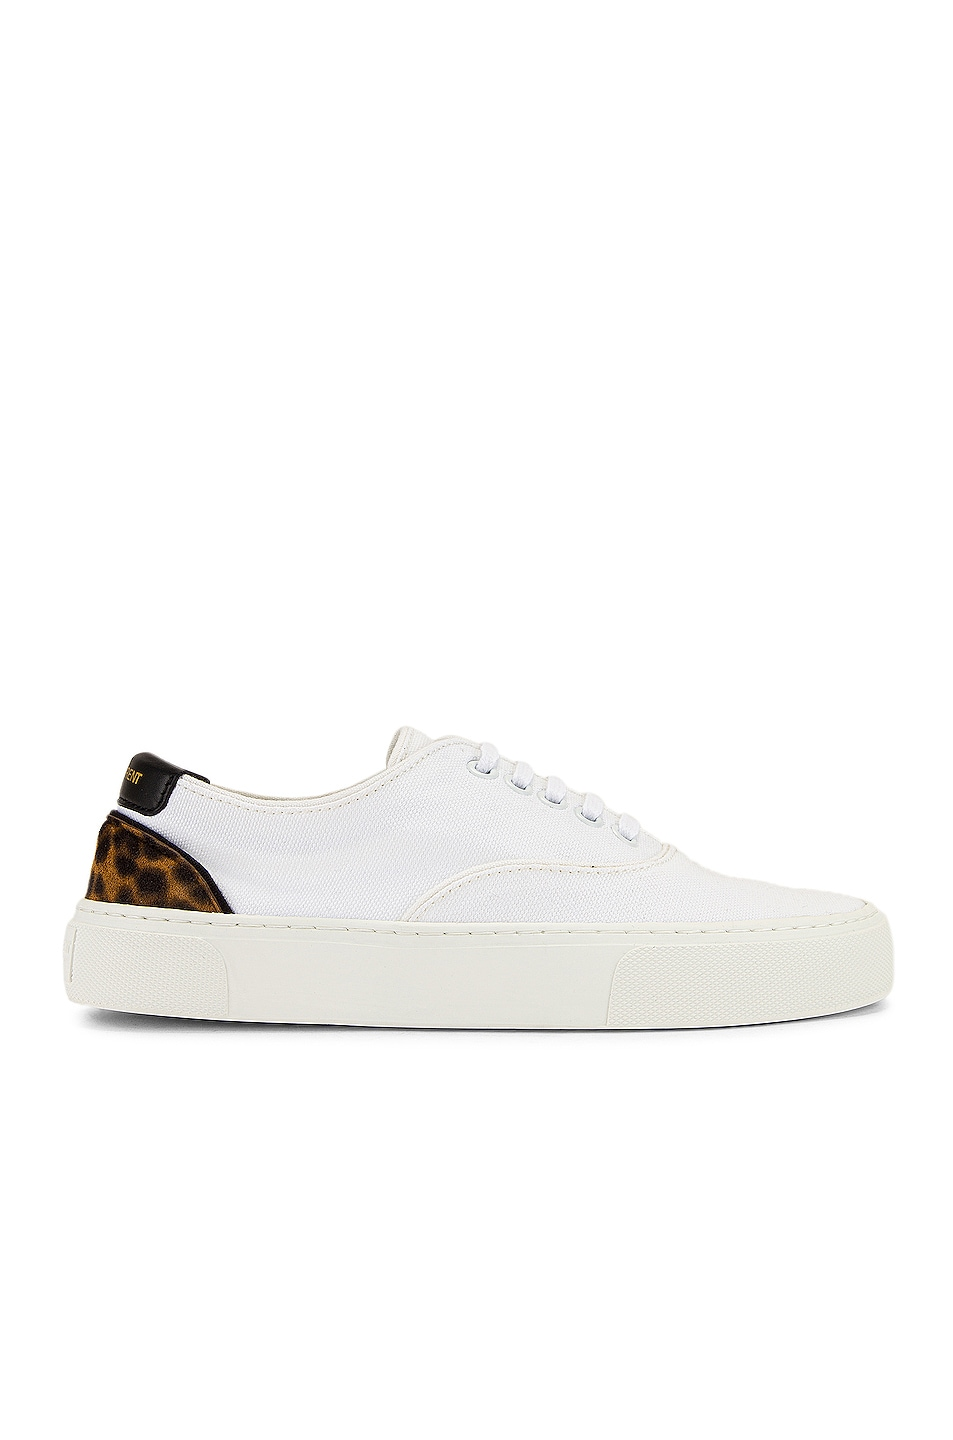 Image 1 of Saint Laurent Venice Low Top Sneakers in White & Manto Naturale